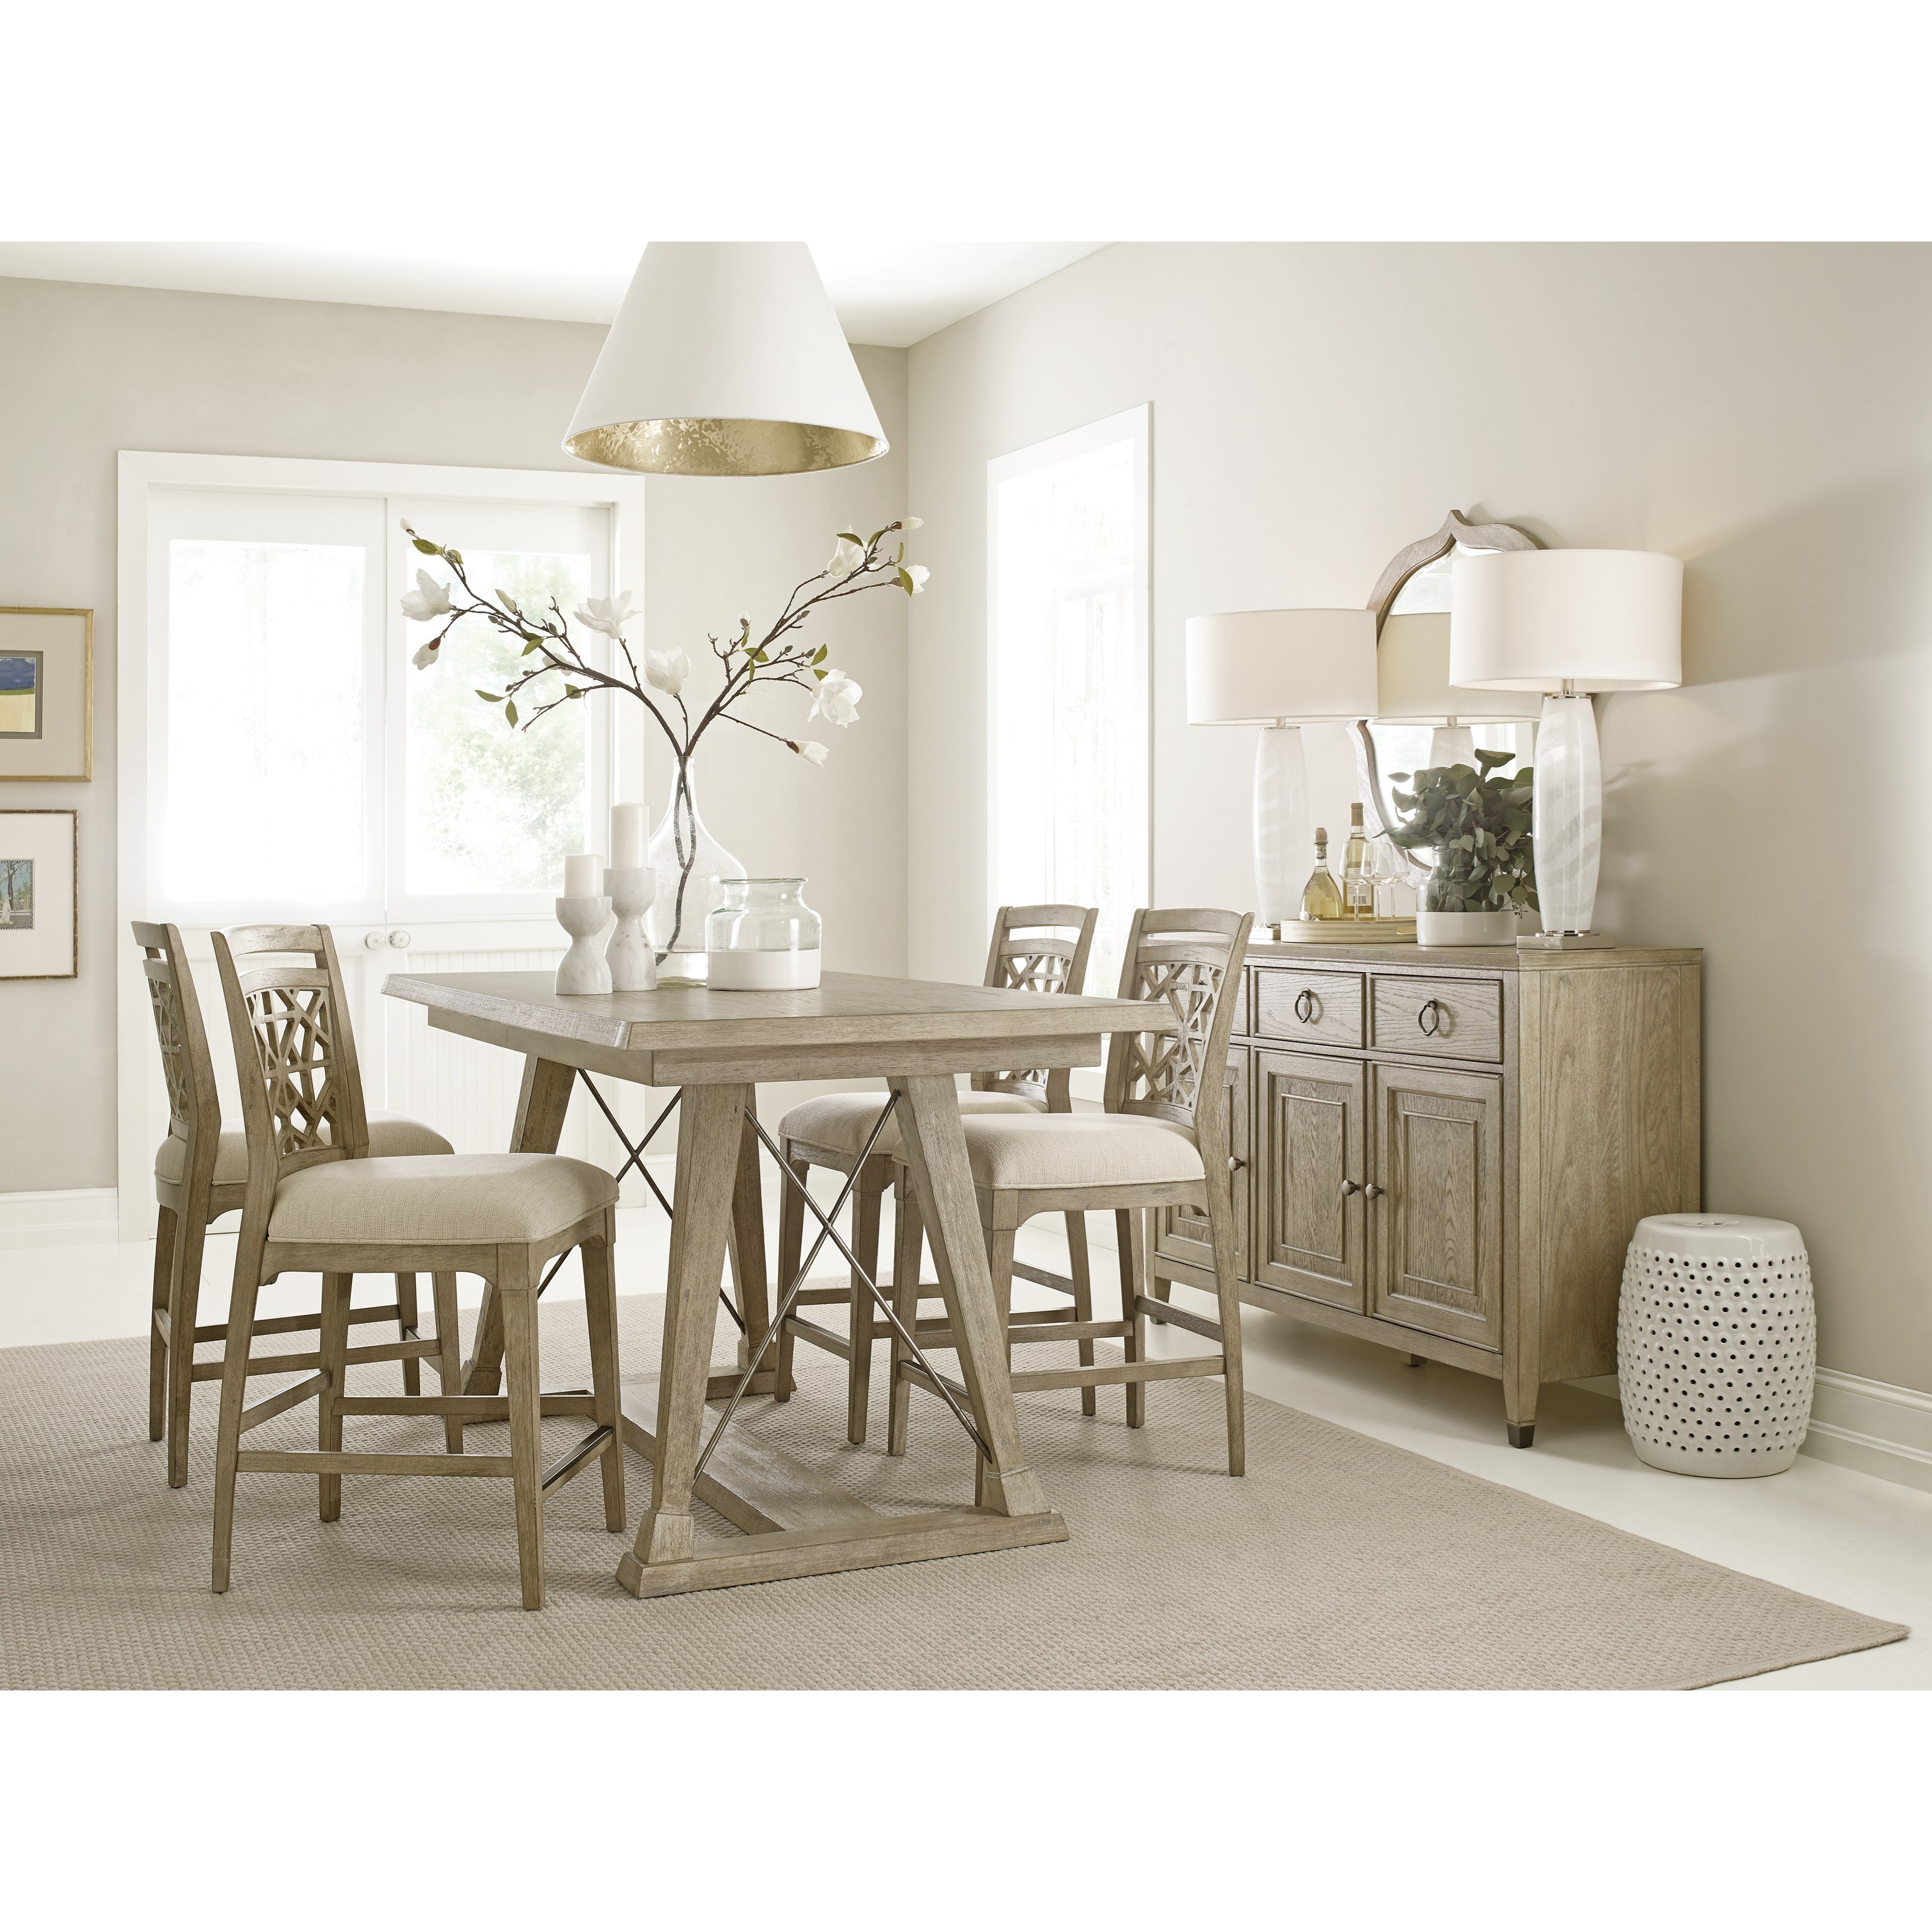 Vista Casual Dining Room Group by American Drew at Alison Craig Home Furnishings